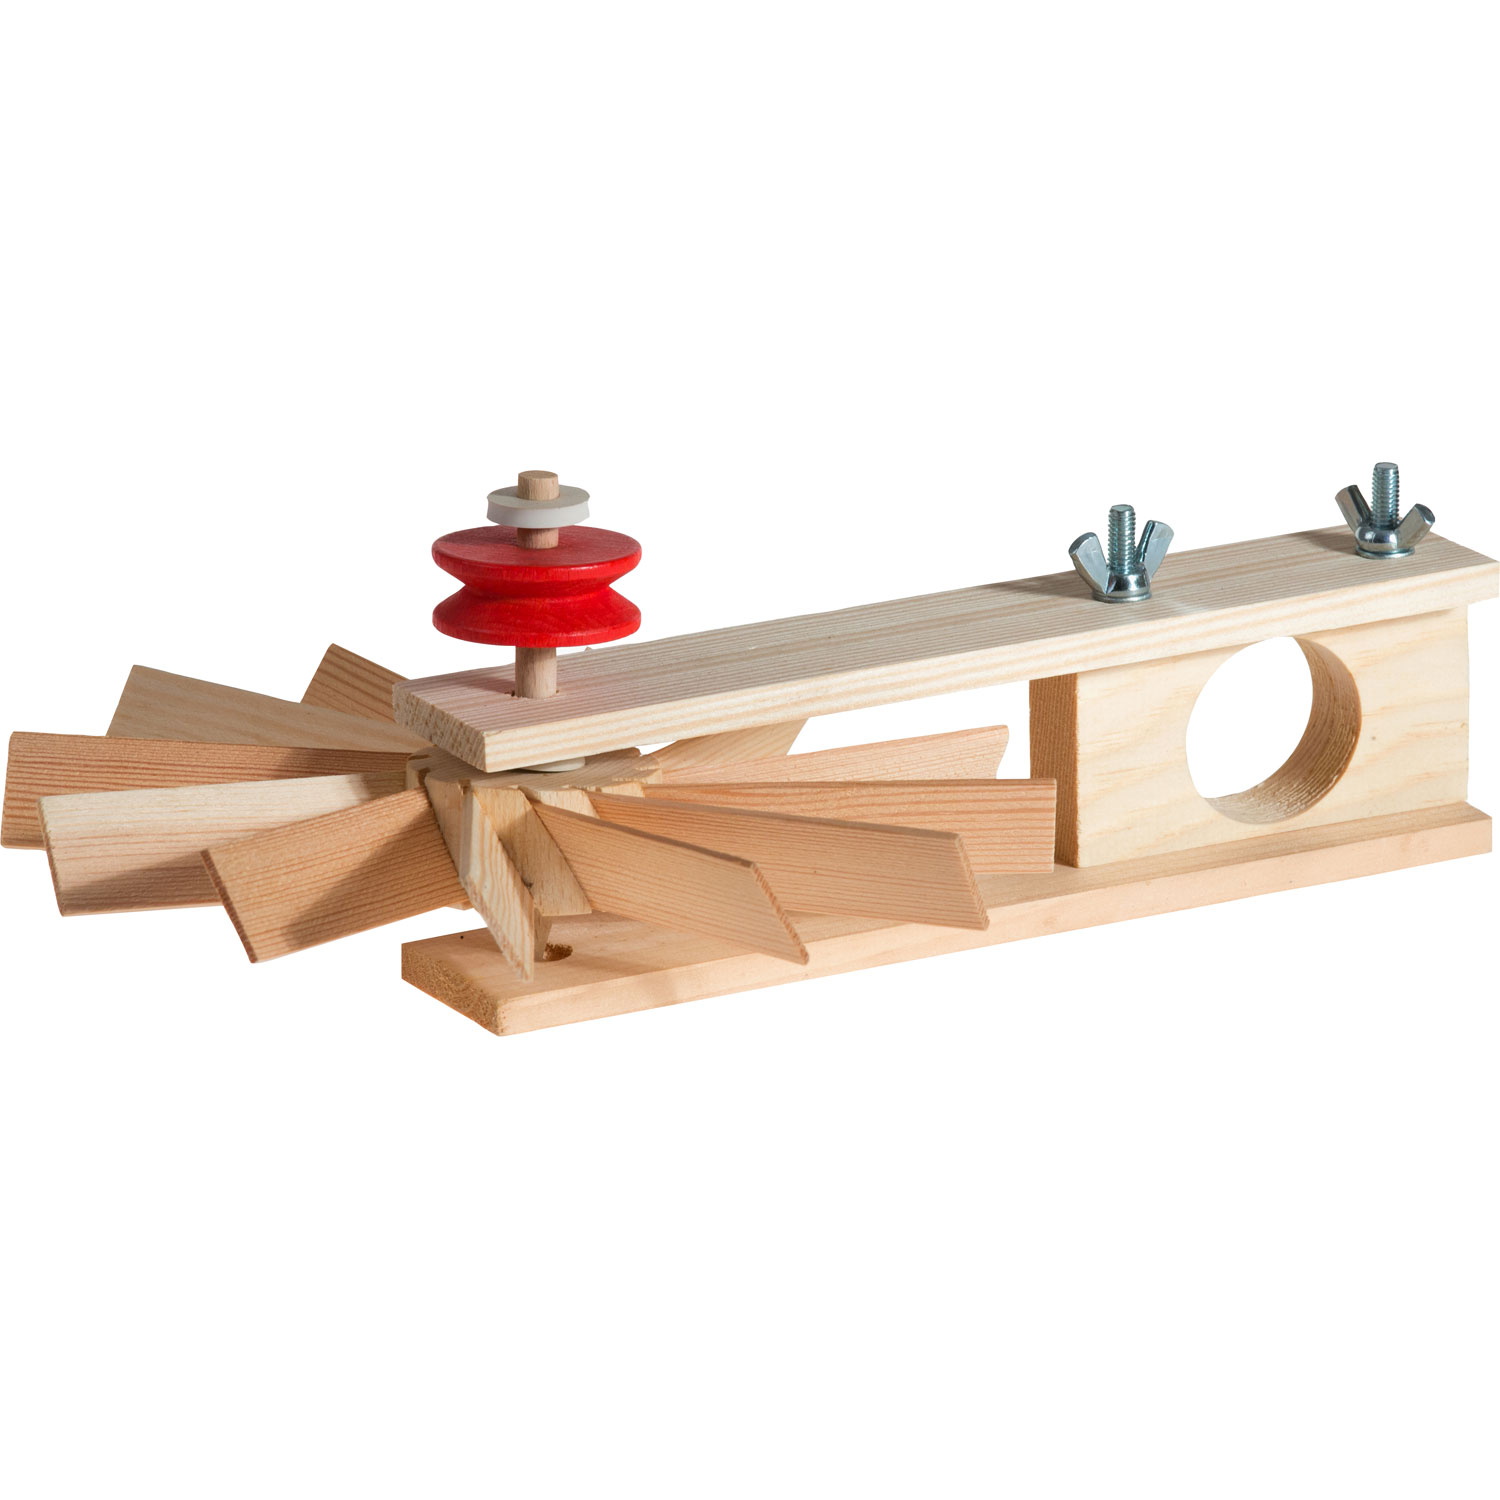 Kit to make your own Water Mill